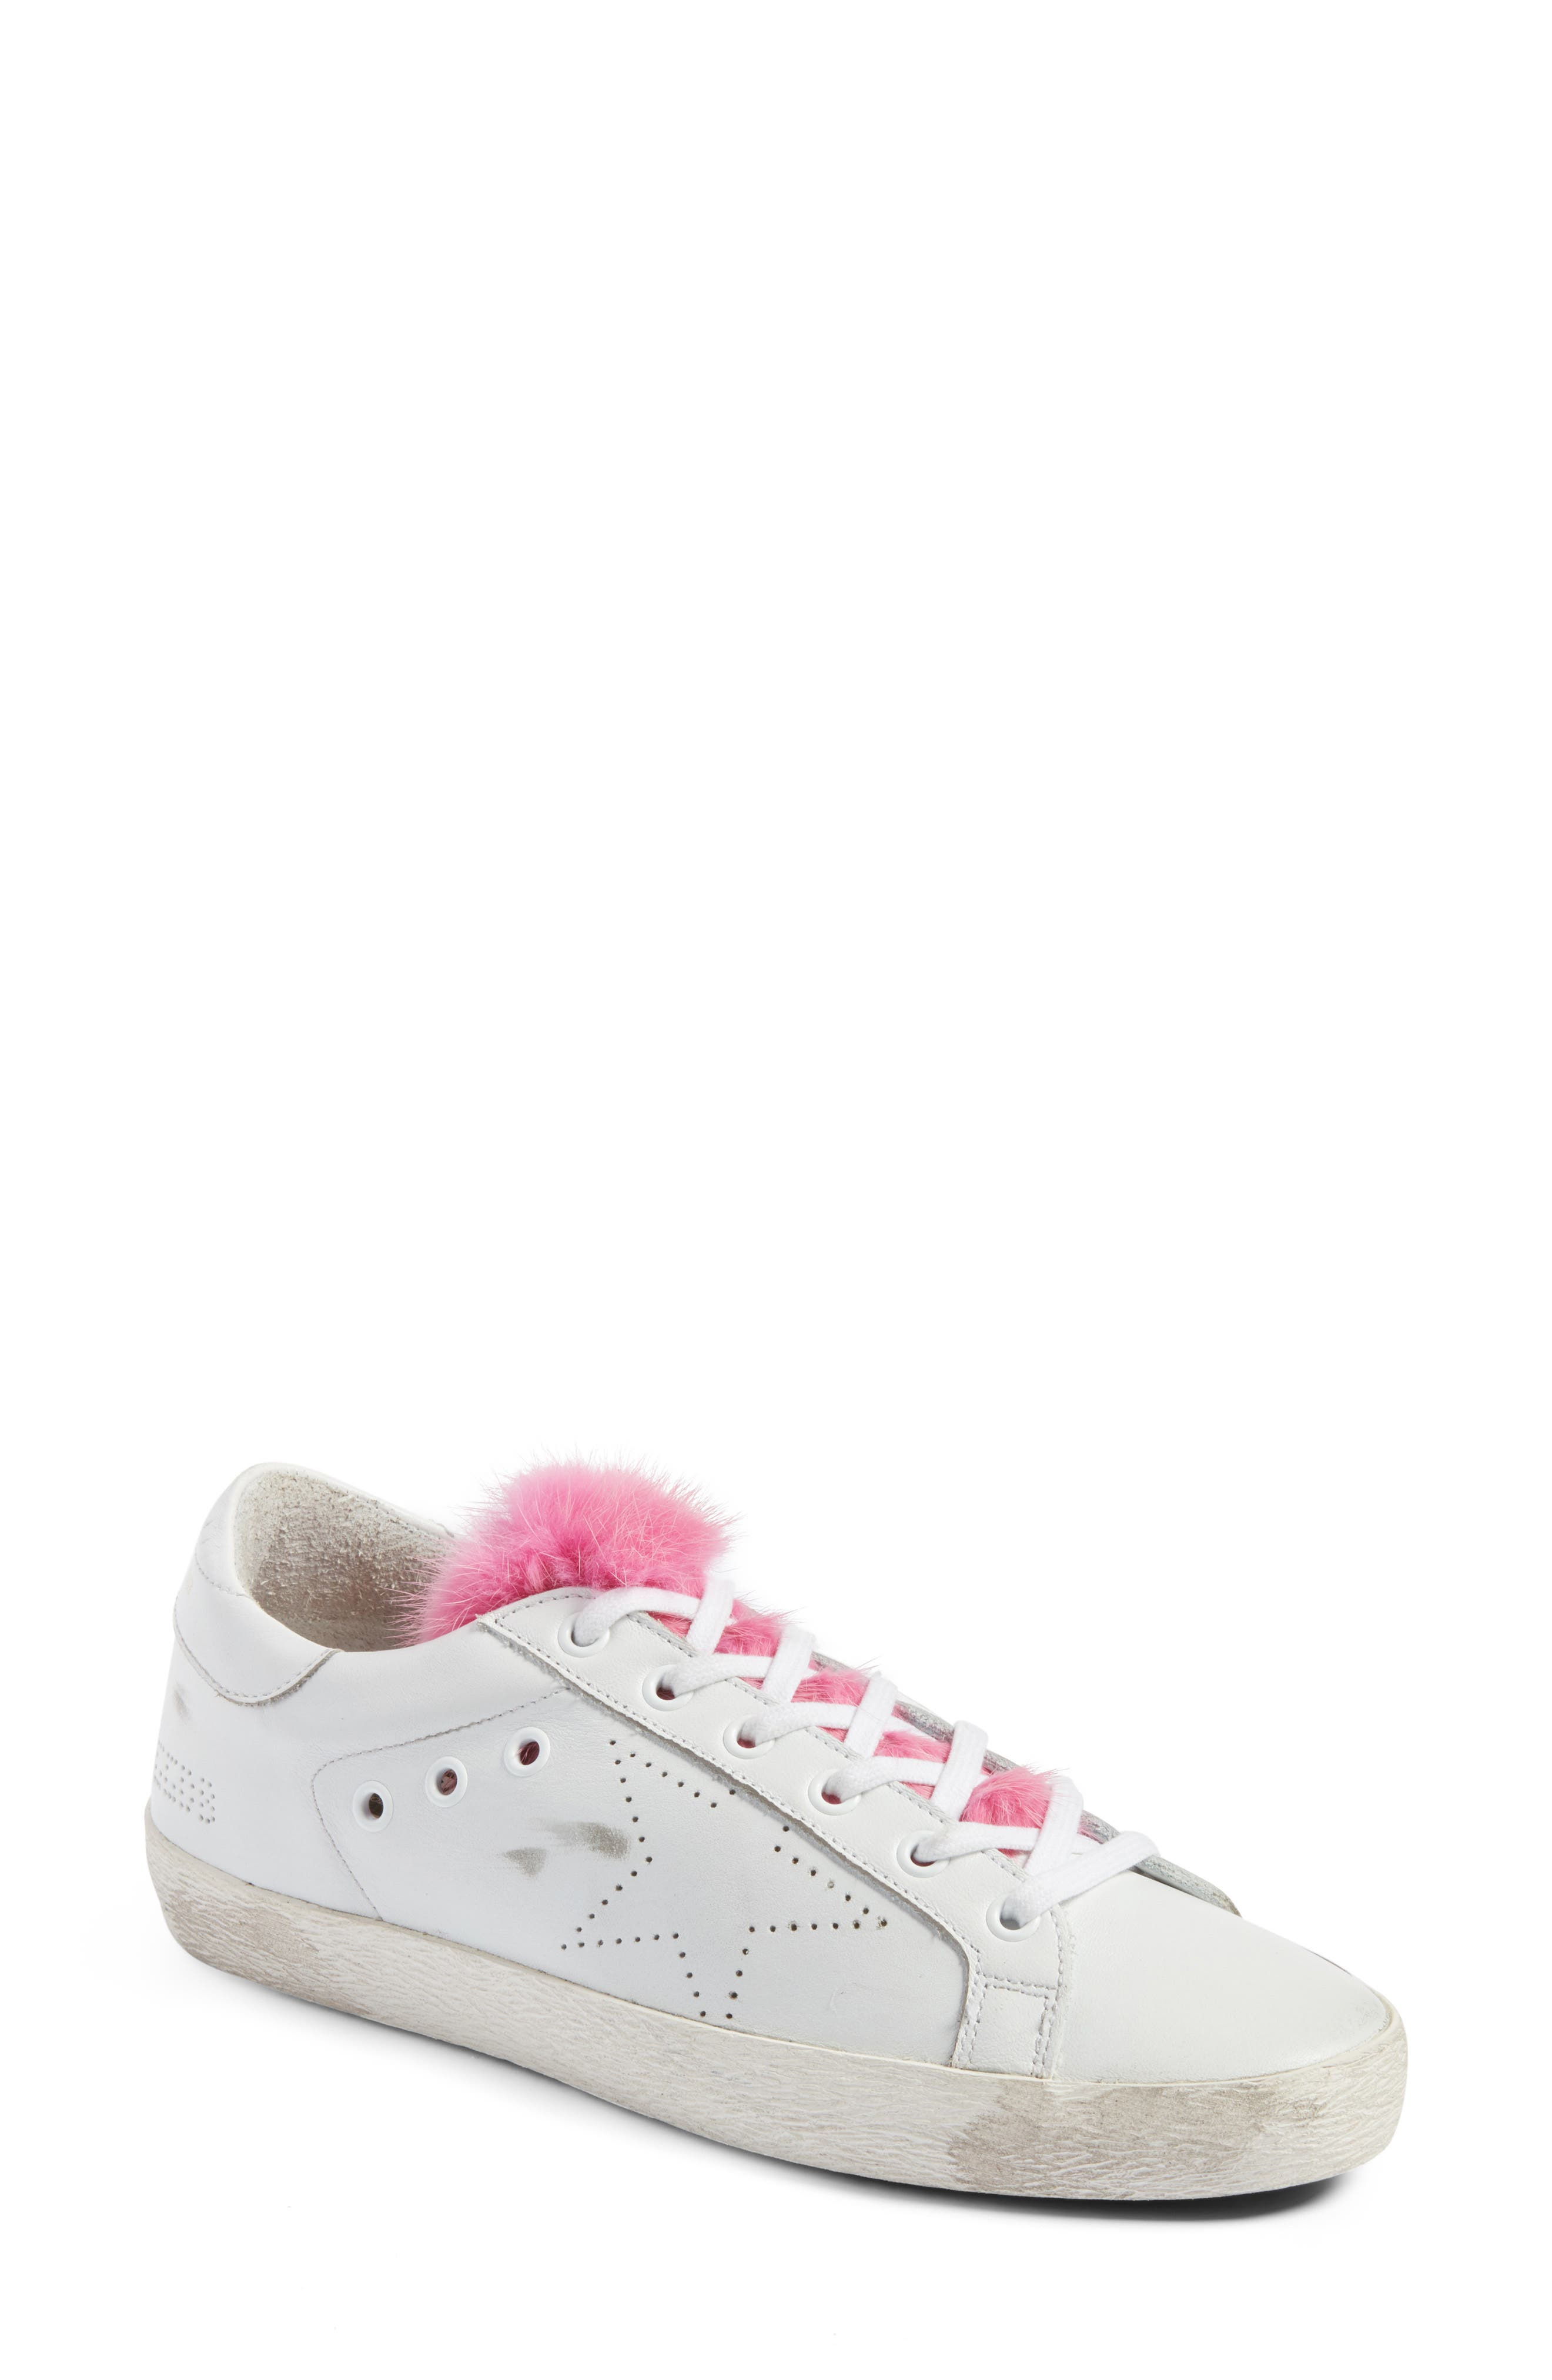 Superstar Genuine Mink Fur Sneaker,                             Main thumbnail 1, color,                             White Leather/ Pink